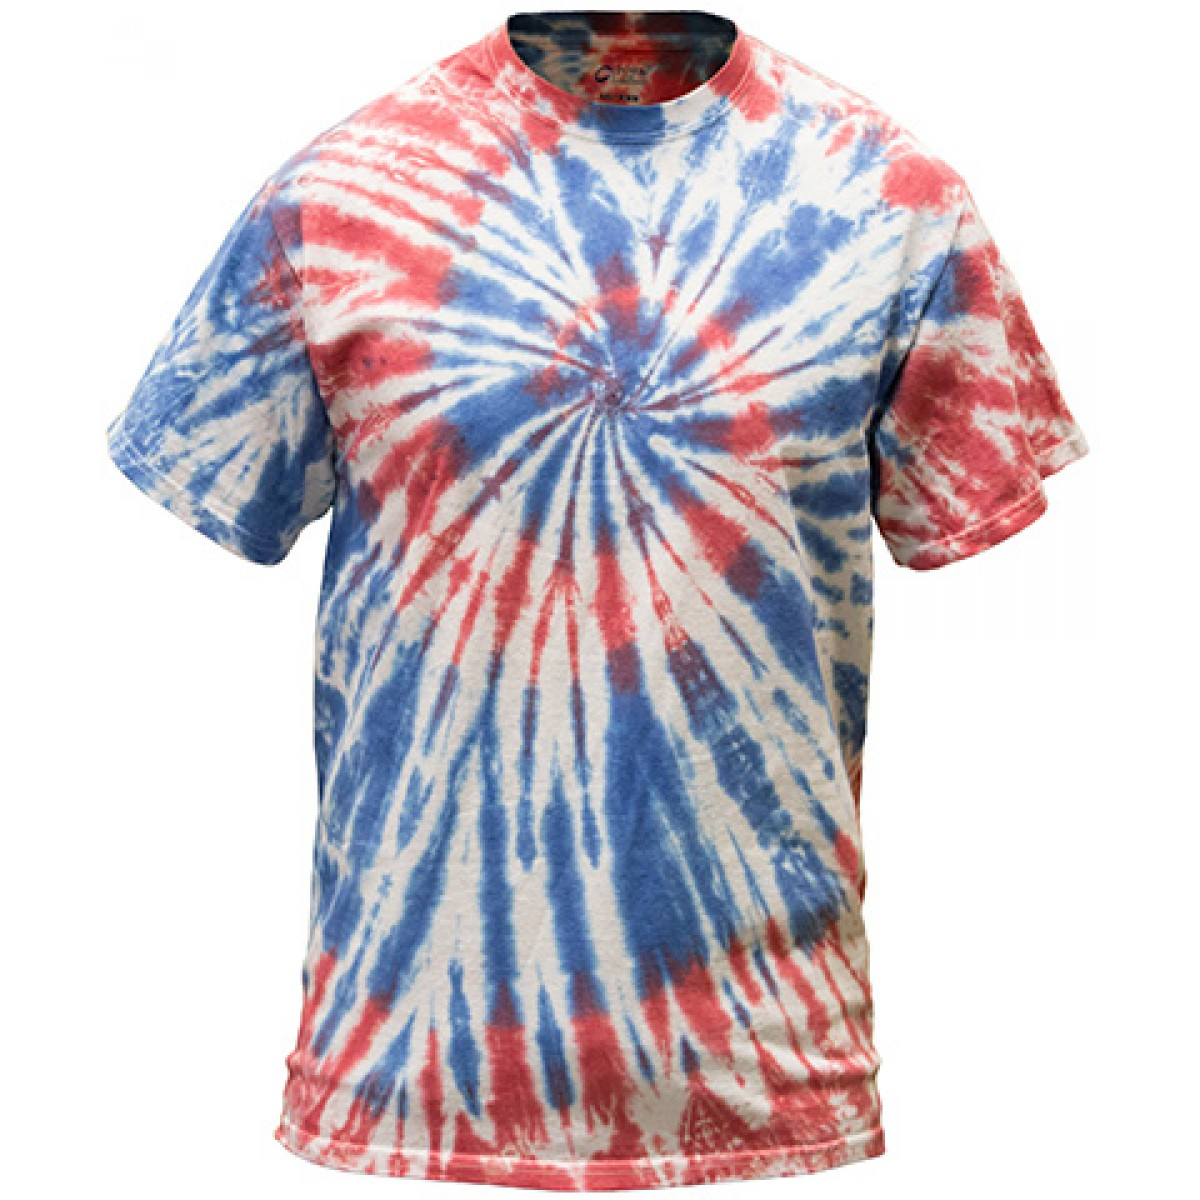 Multi-Color Tie-Dye Tee -Red/White/Blue-2XL